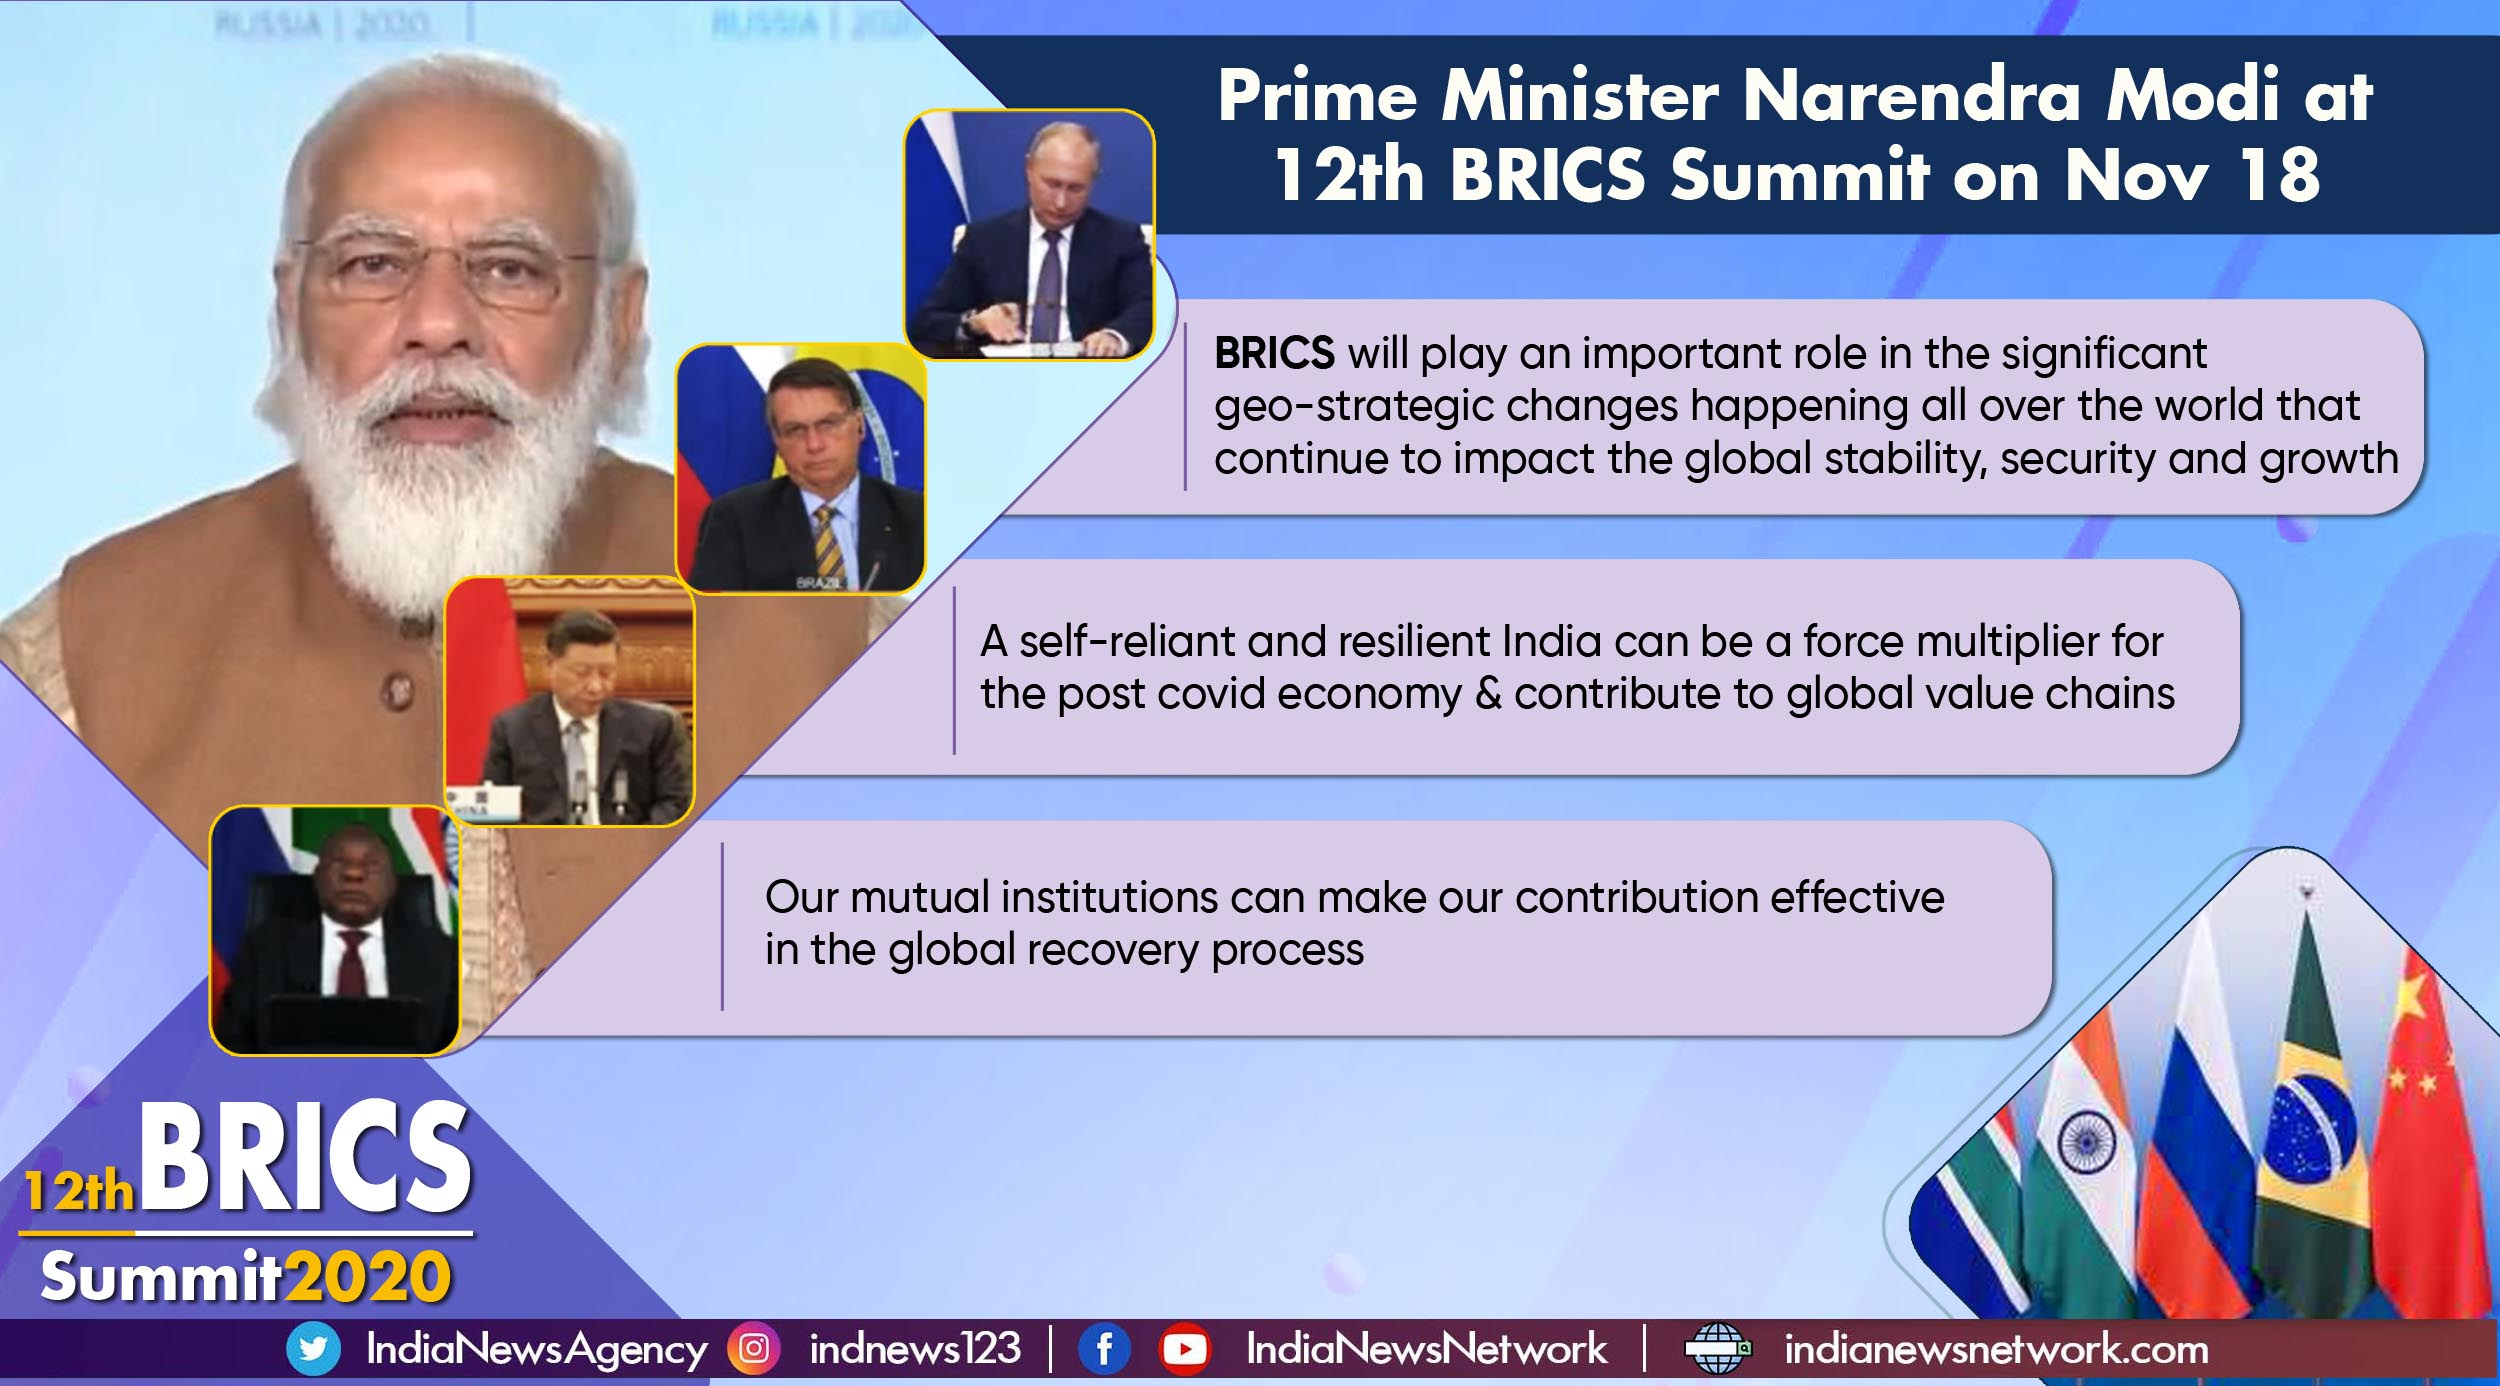 Key highlights from PM Modi's address at the 12th BRICS Summit